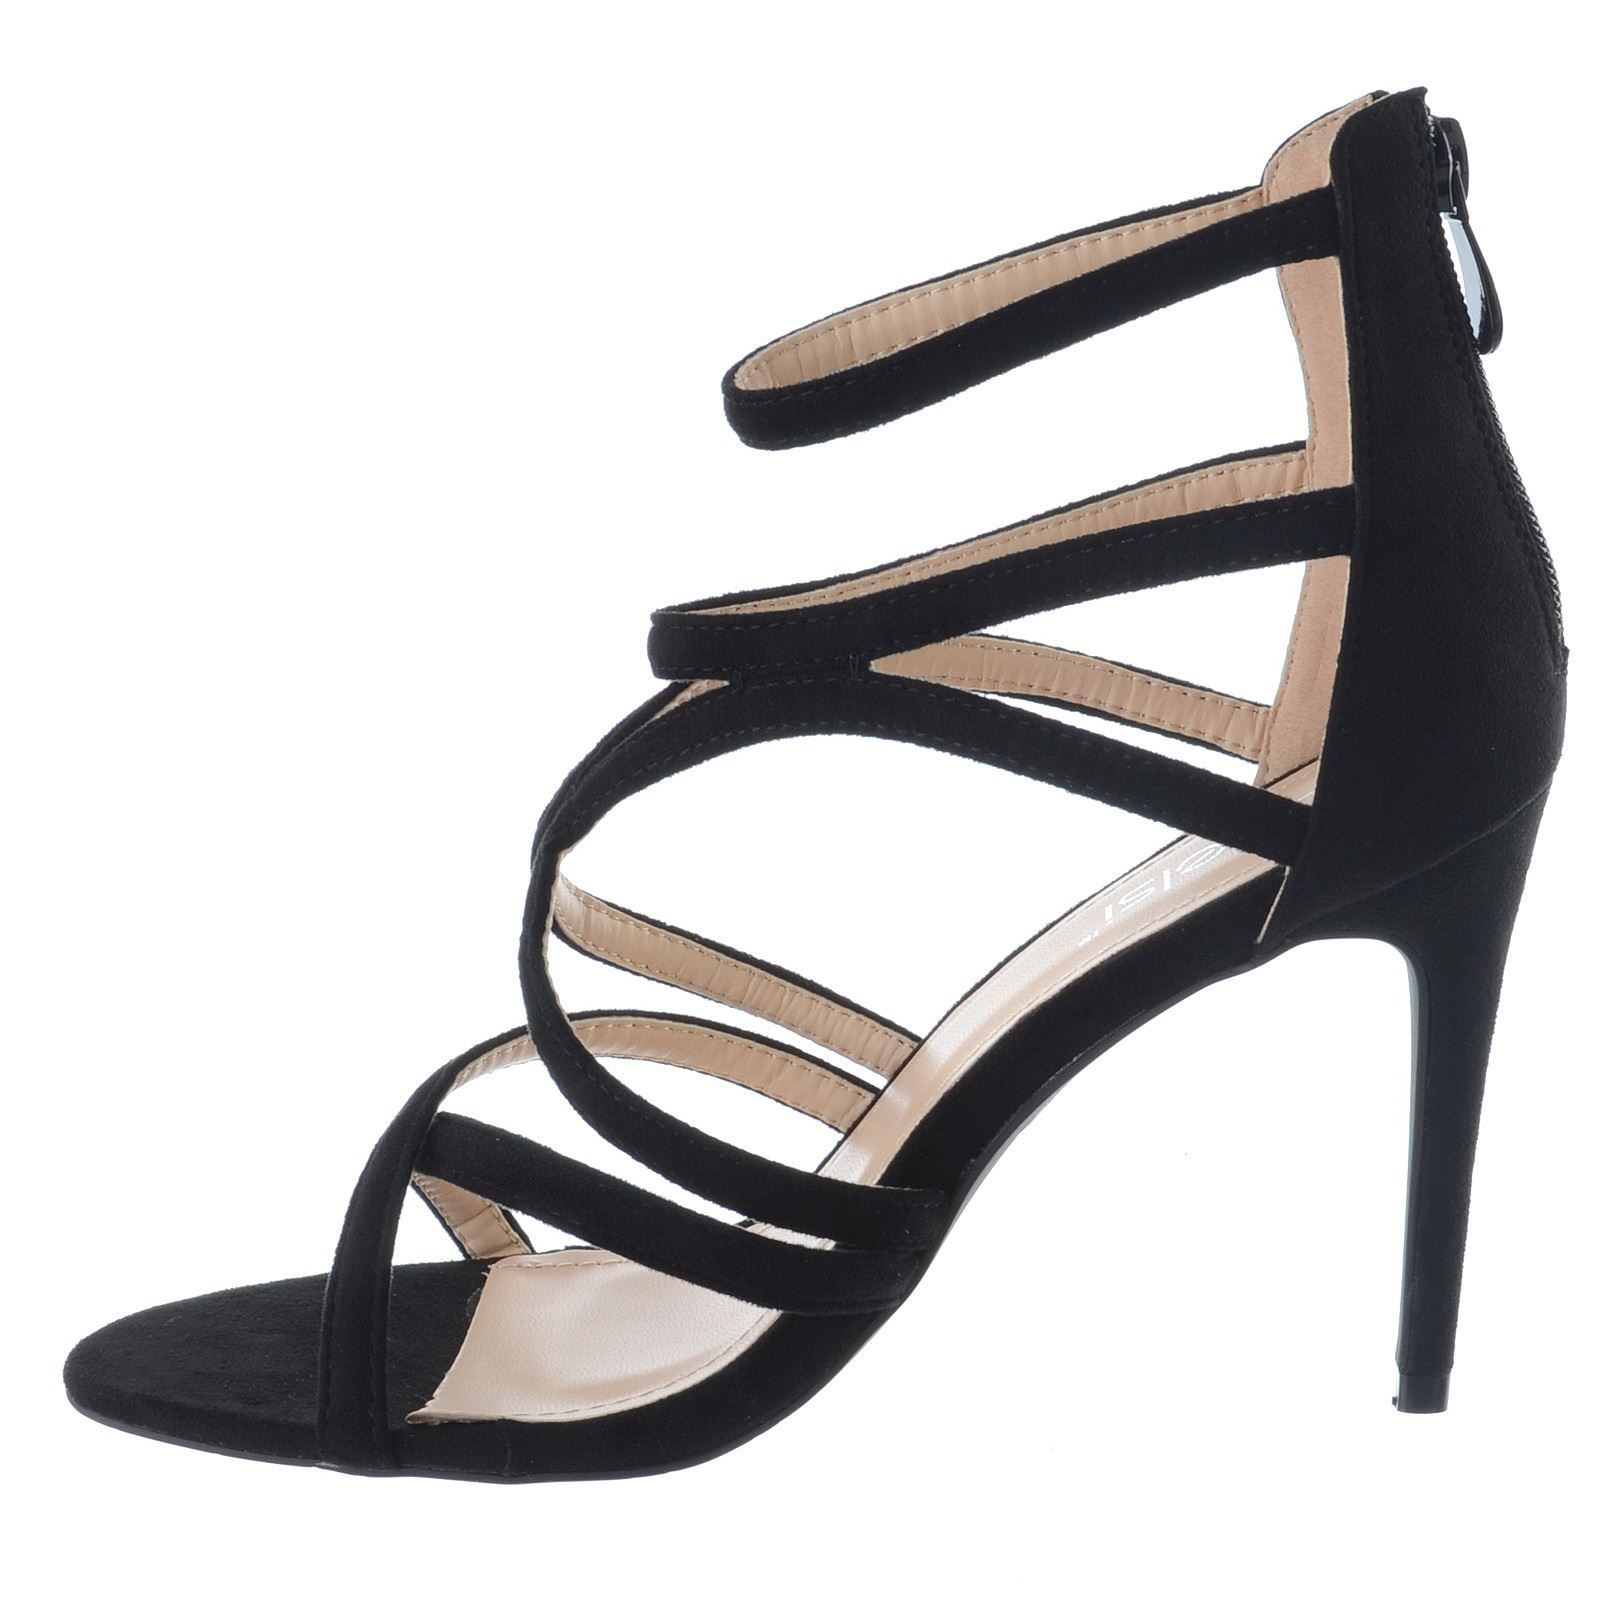 NEW LADIES WOMENS HIGH STILETTO HEEL CAGED CUT OUT SANDALS STRAPPY SHOES SIZE